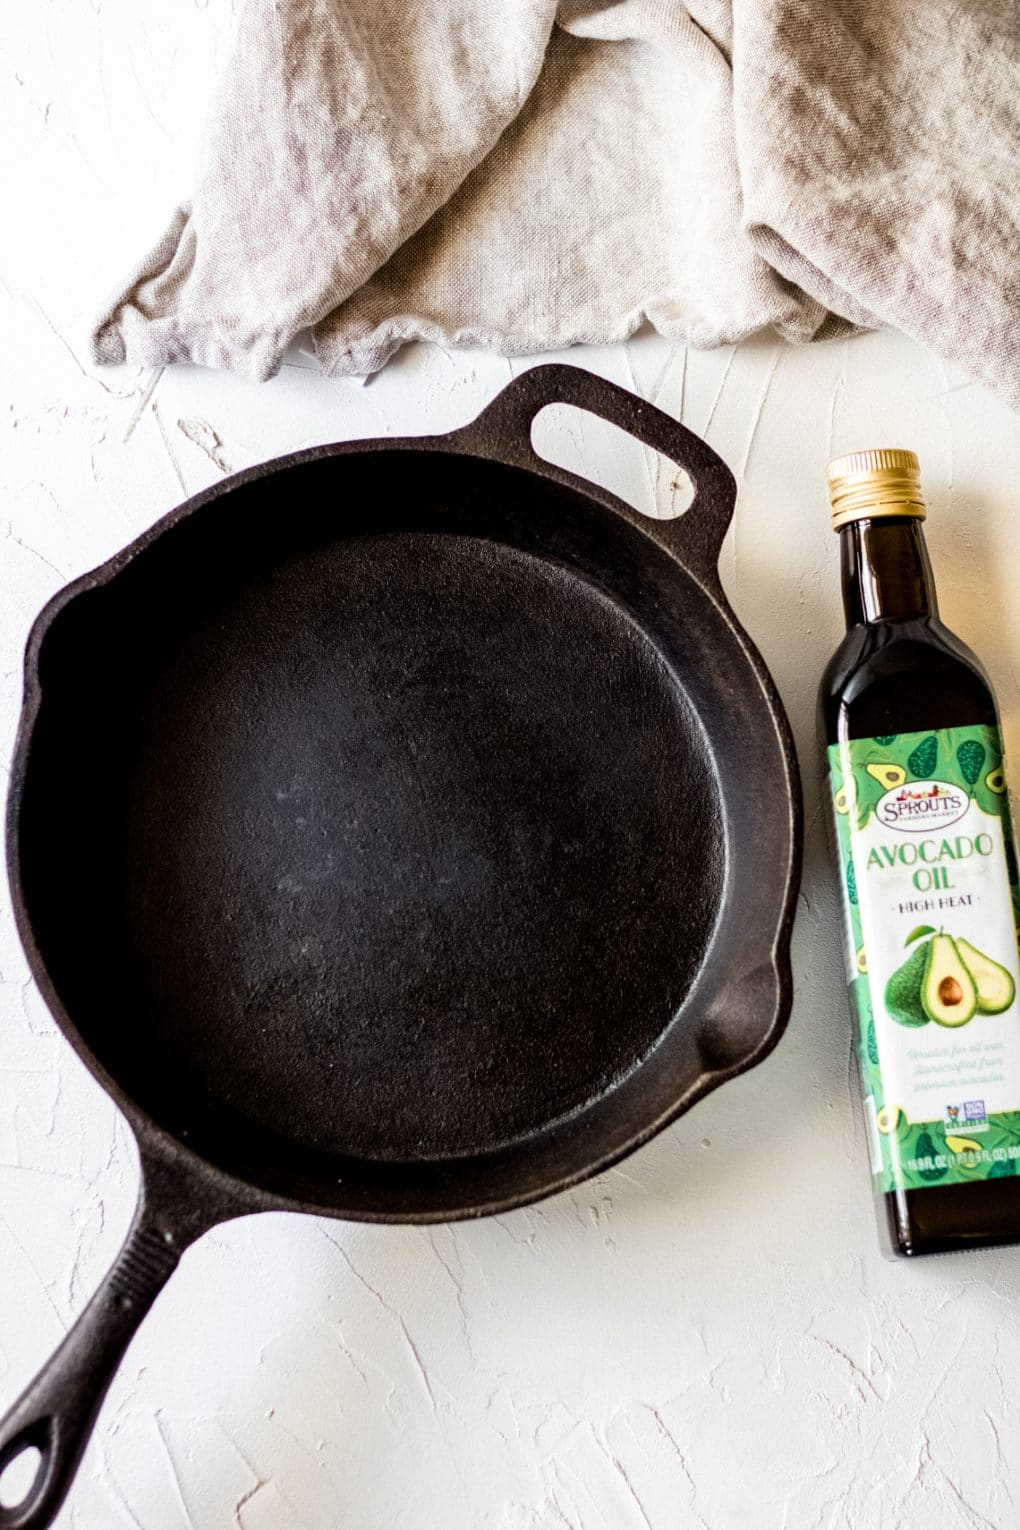 a cast iron skillet and a bottle of avocado oil